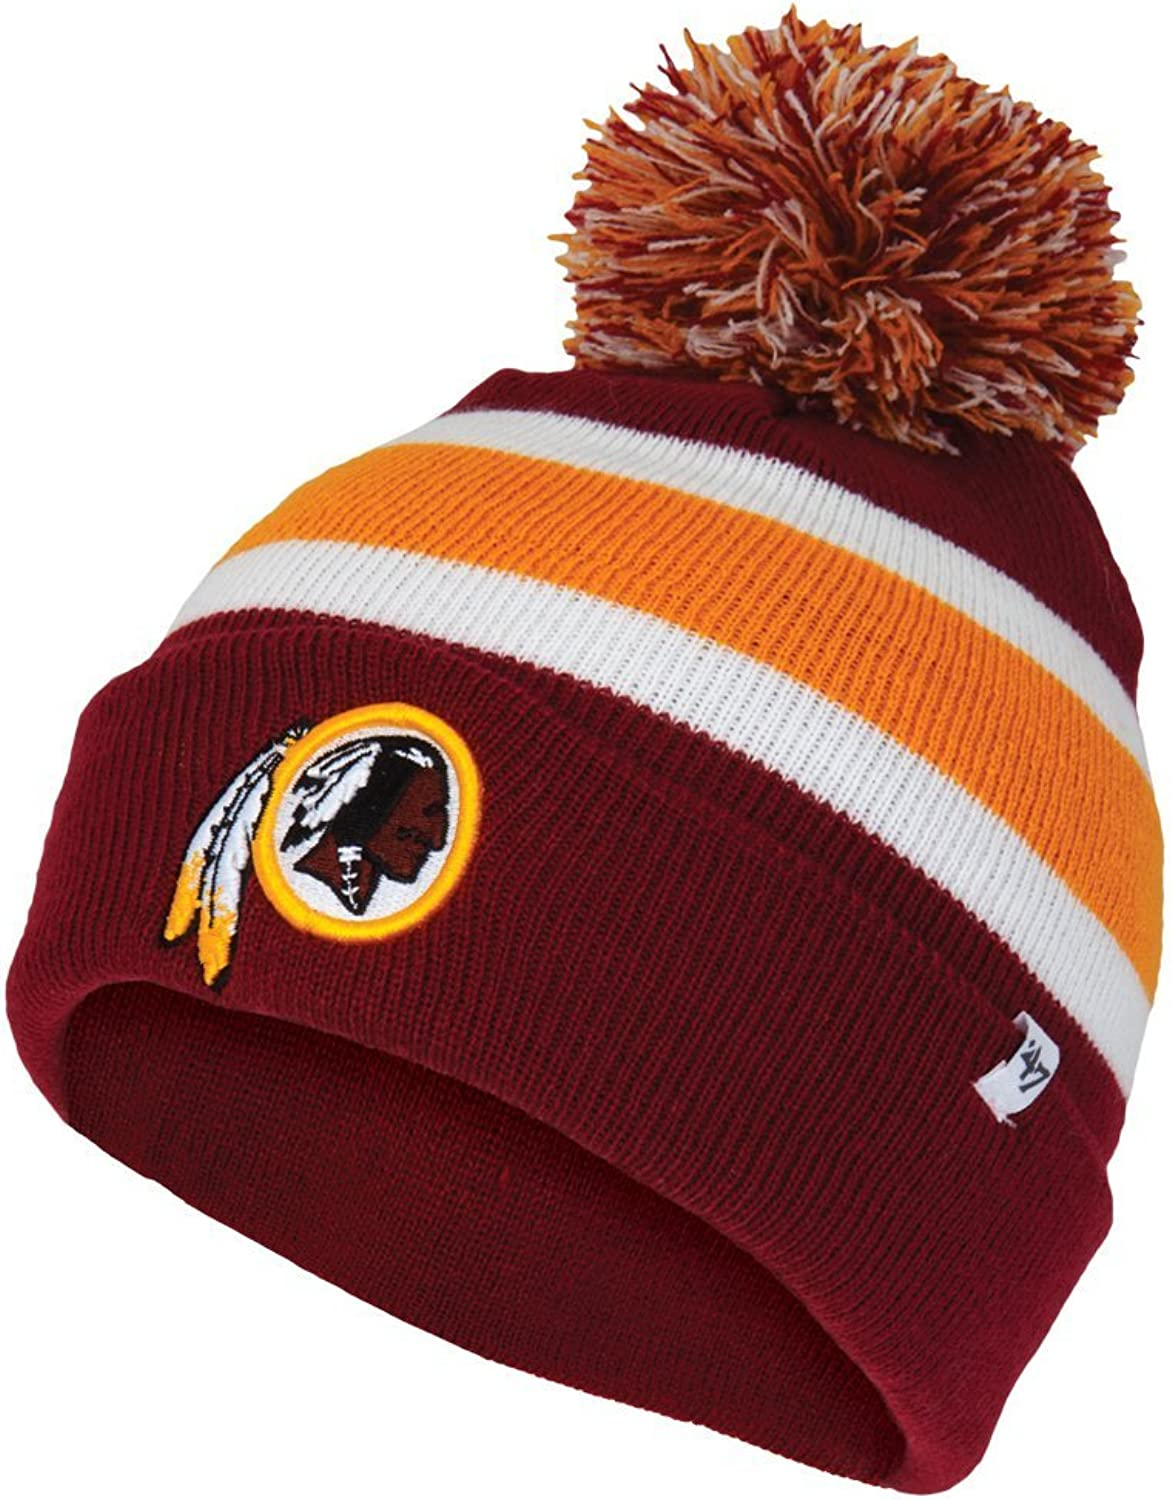 4a2d84ba2 47 Washington Redskins Cuff Breakaway Beanie Hat with Pom NFL Cuffed ...